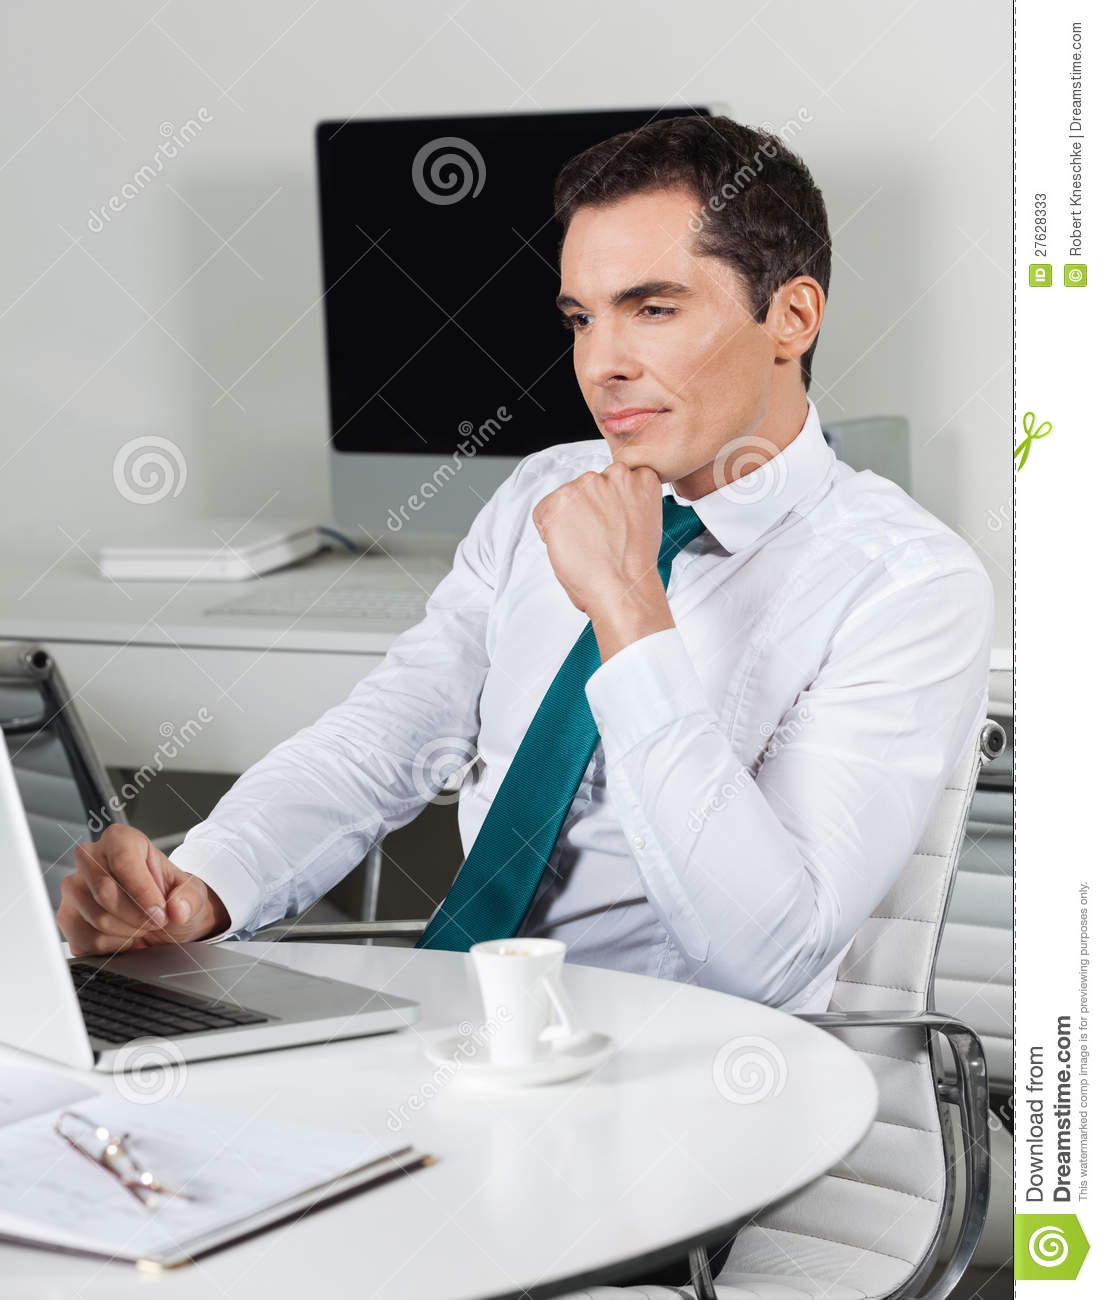 Manager With Laptop At Office Desk Stock Photos - Image ...